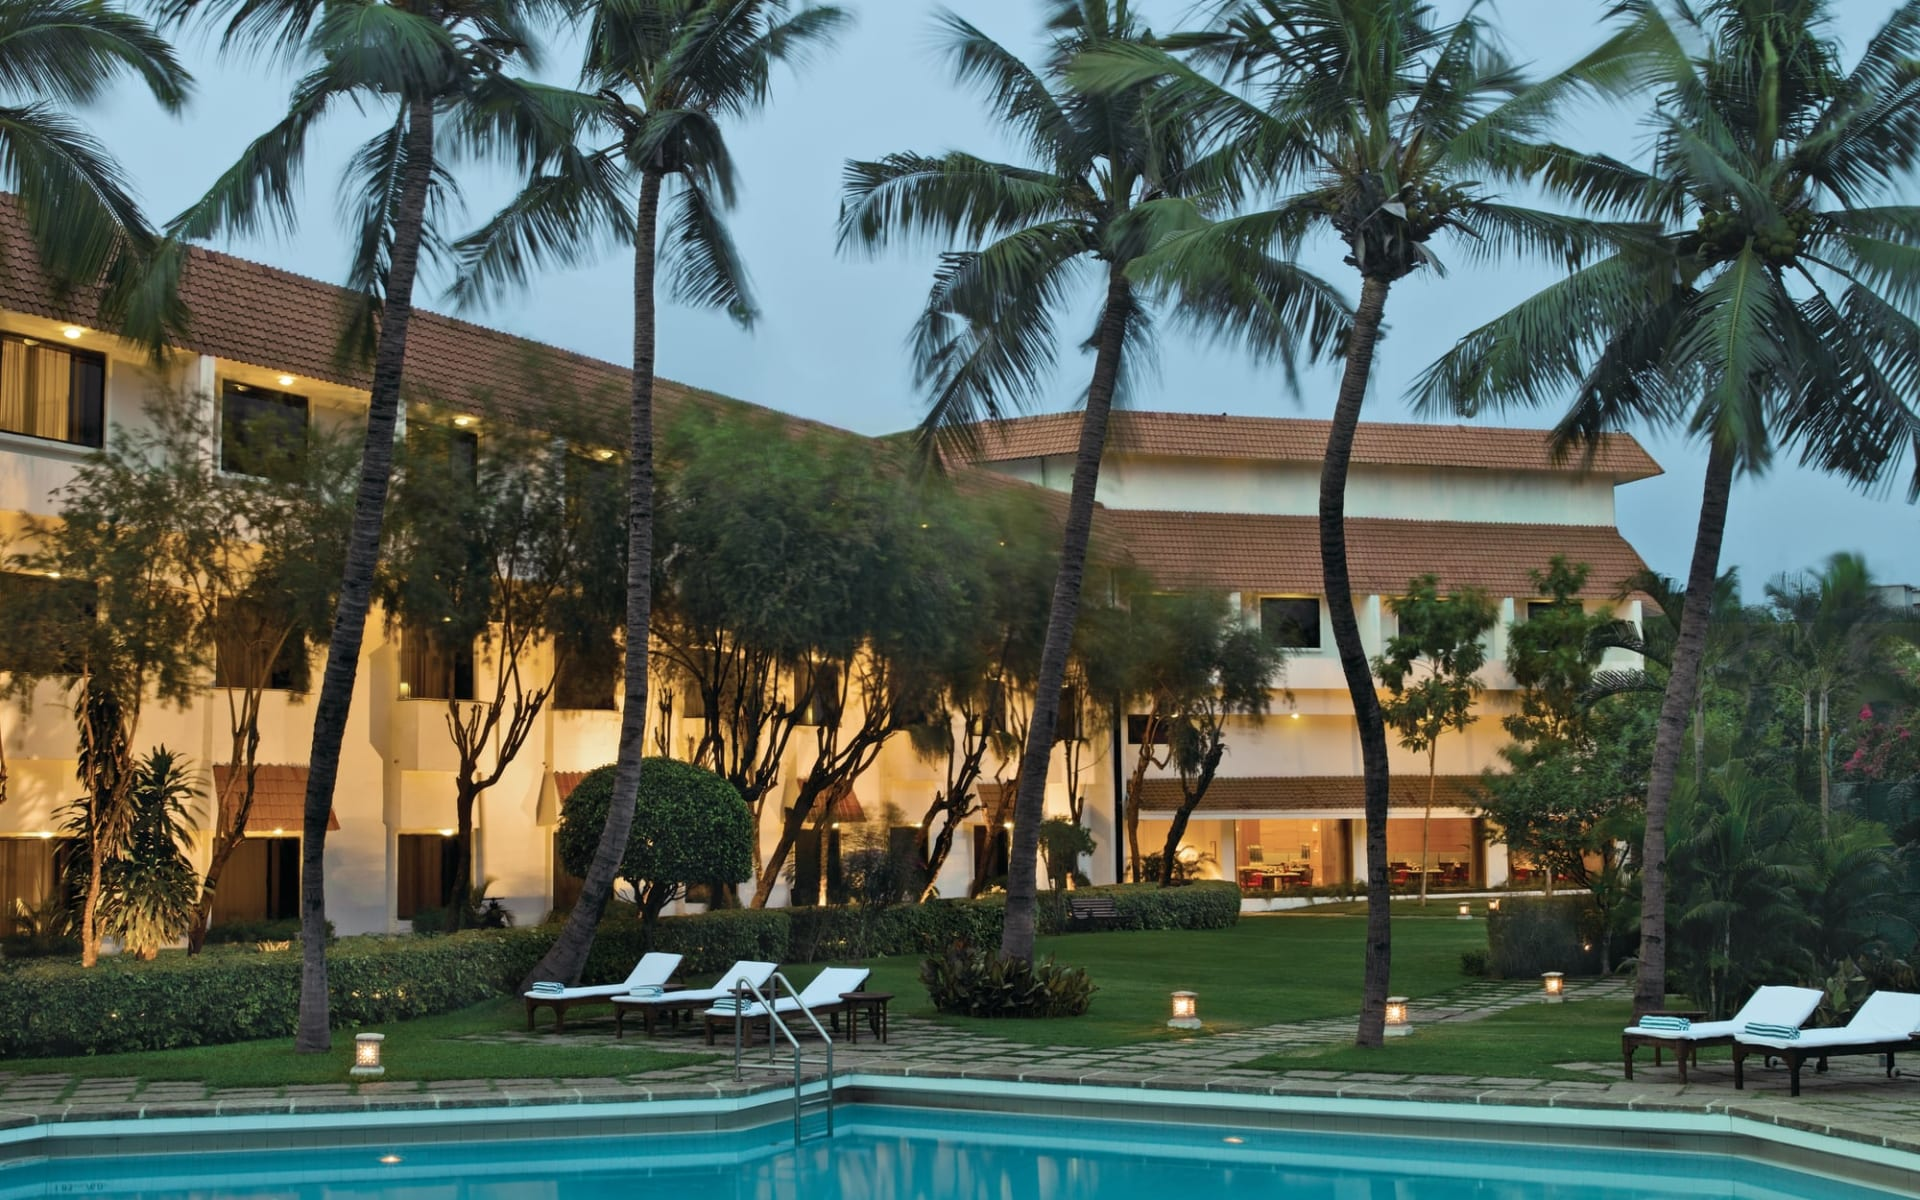 Trident in Chennai: Exterior with pool